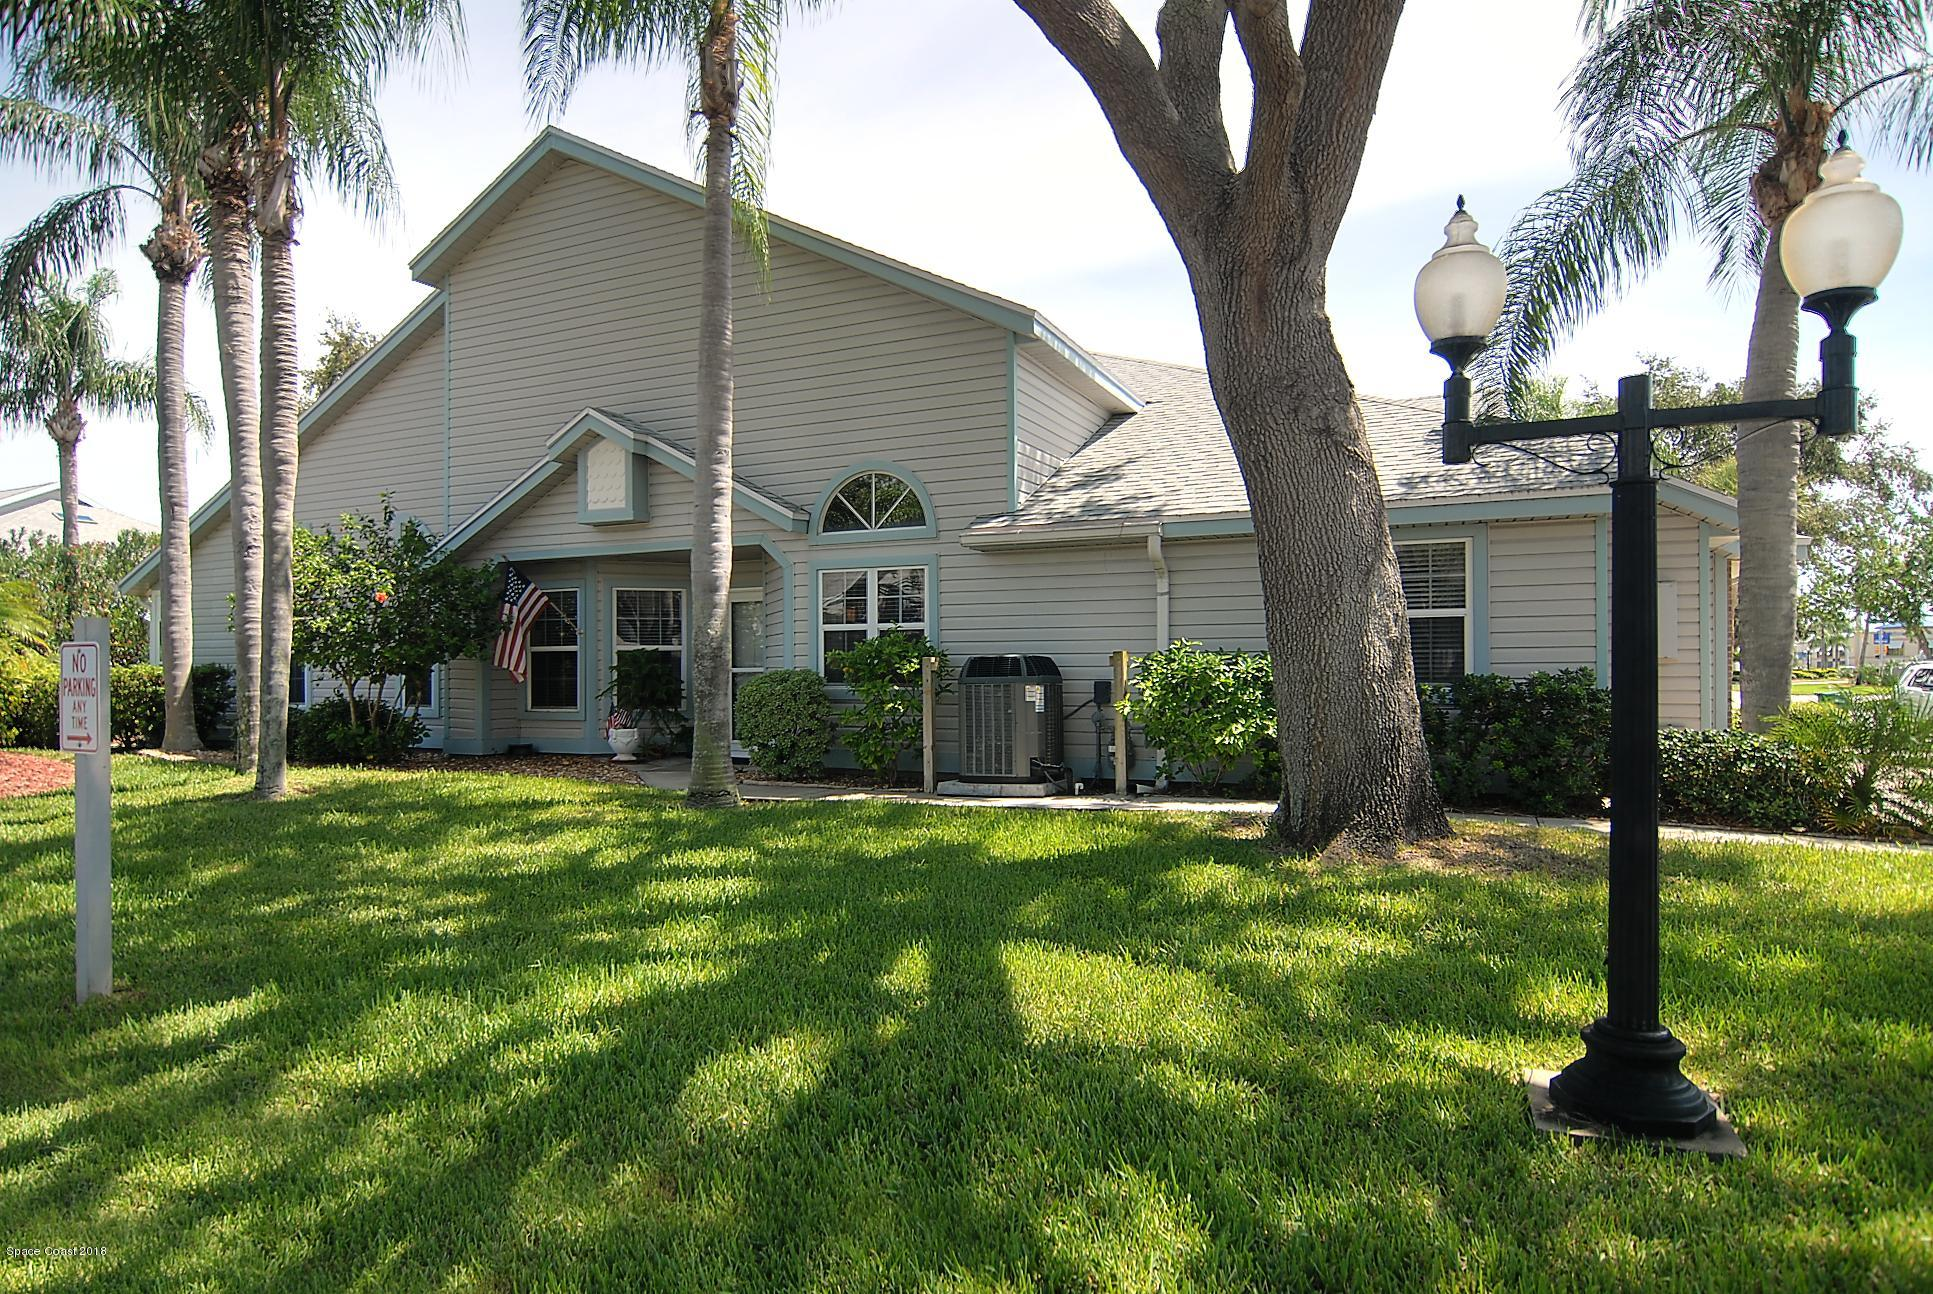 108 Tradewinds Dr Indian Harbour Beach, FL 32937. Sold by Brent Burns